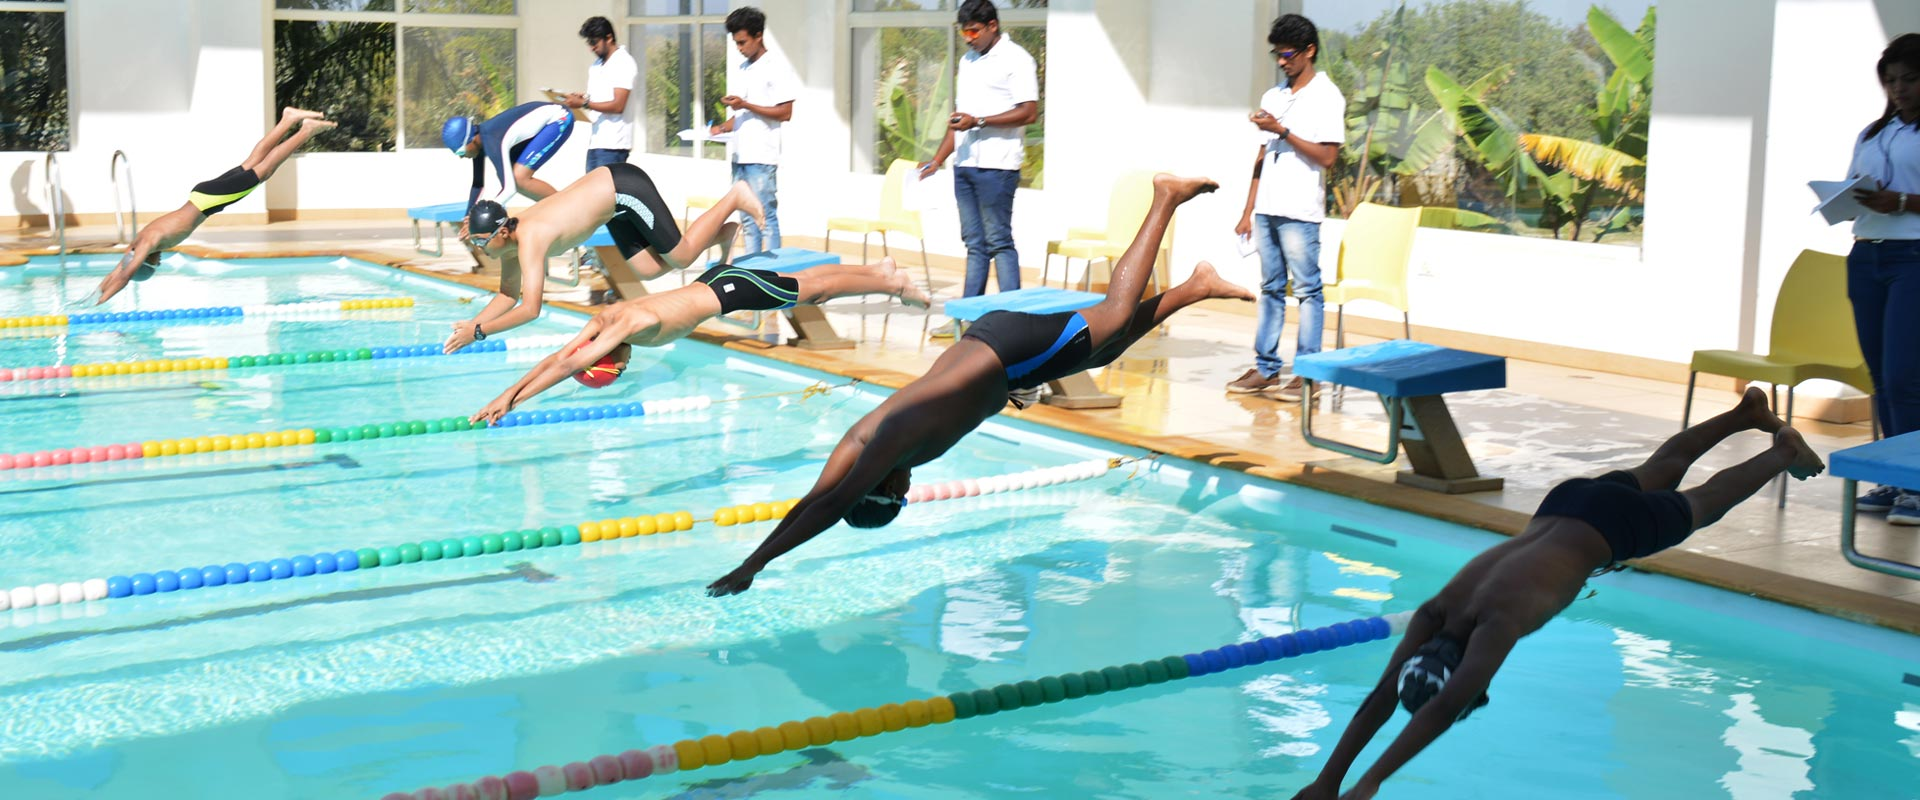 swimming-international-school-bangalore